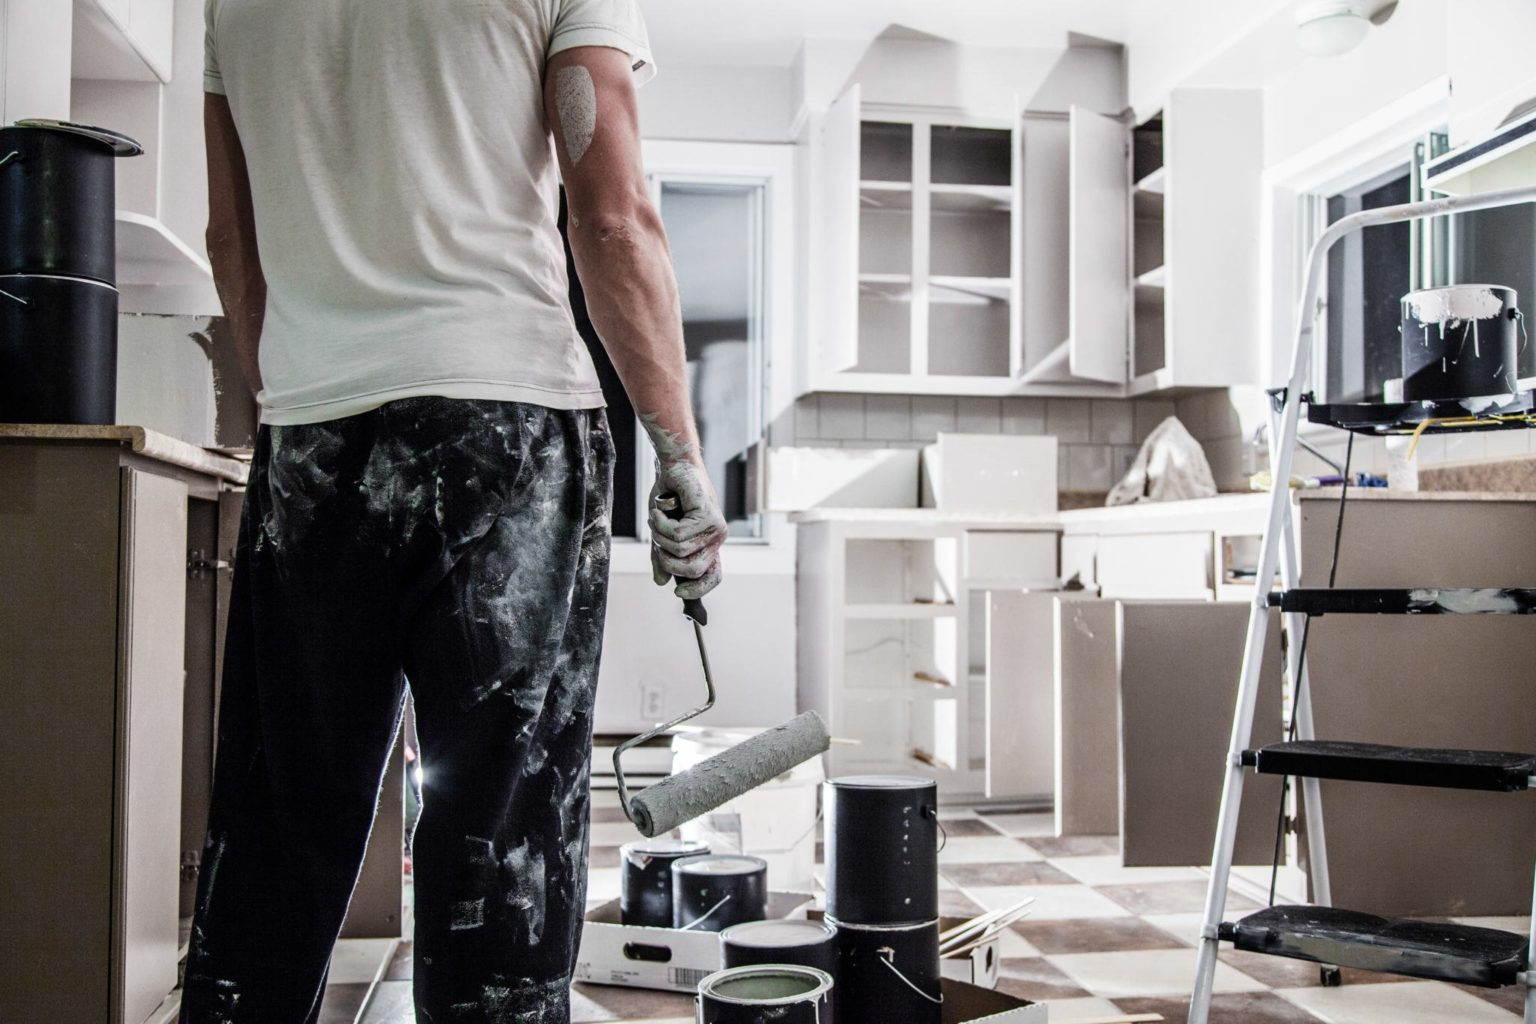 Man remodeling a kitchen